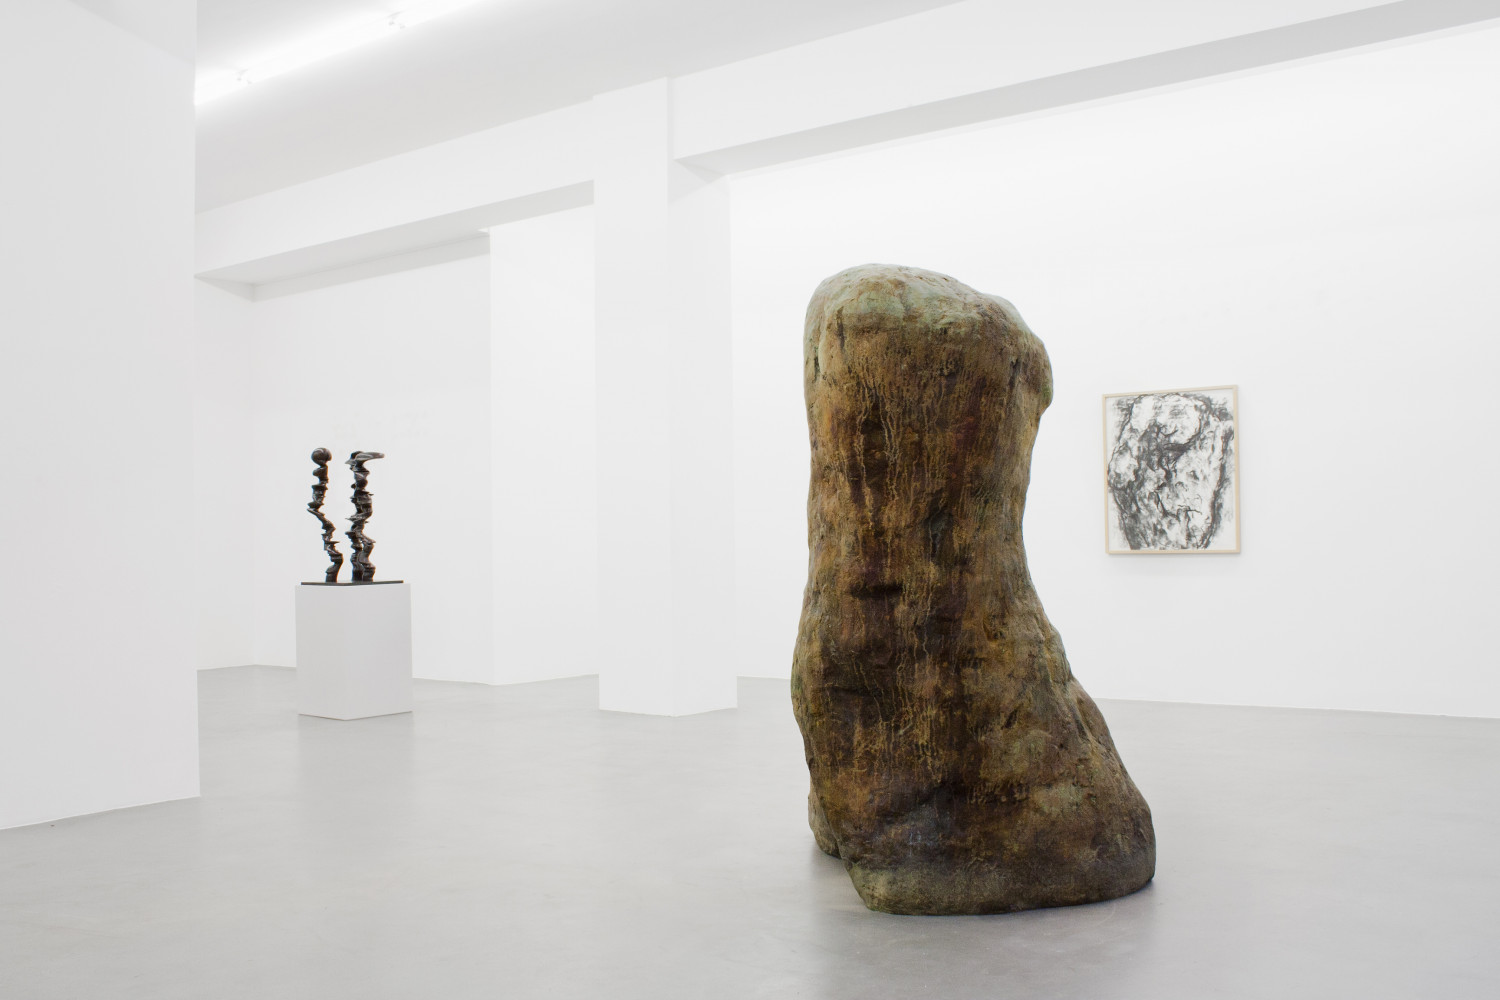 Tony Cragg, William Tucker, 'Figure – Tony Cragg - Martin Disler - Medardo Rosso - William Tucker - Rebecca Warren', Installation view, Buchmann Galerie, 2015–2016